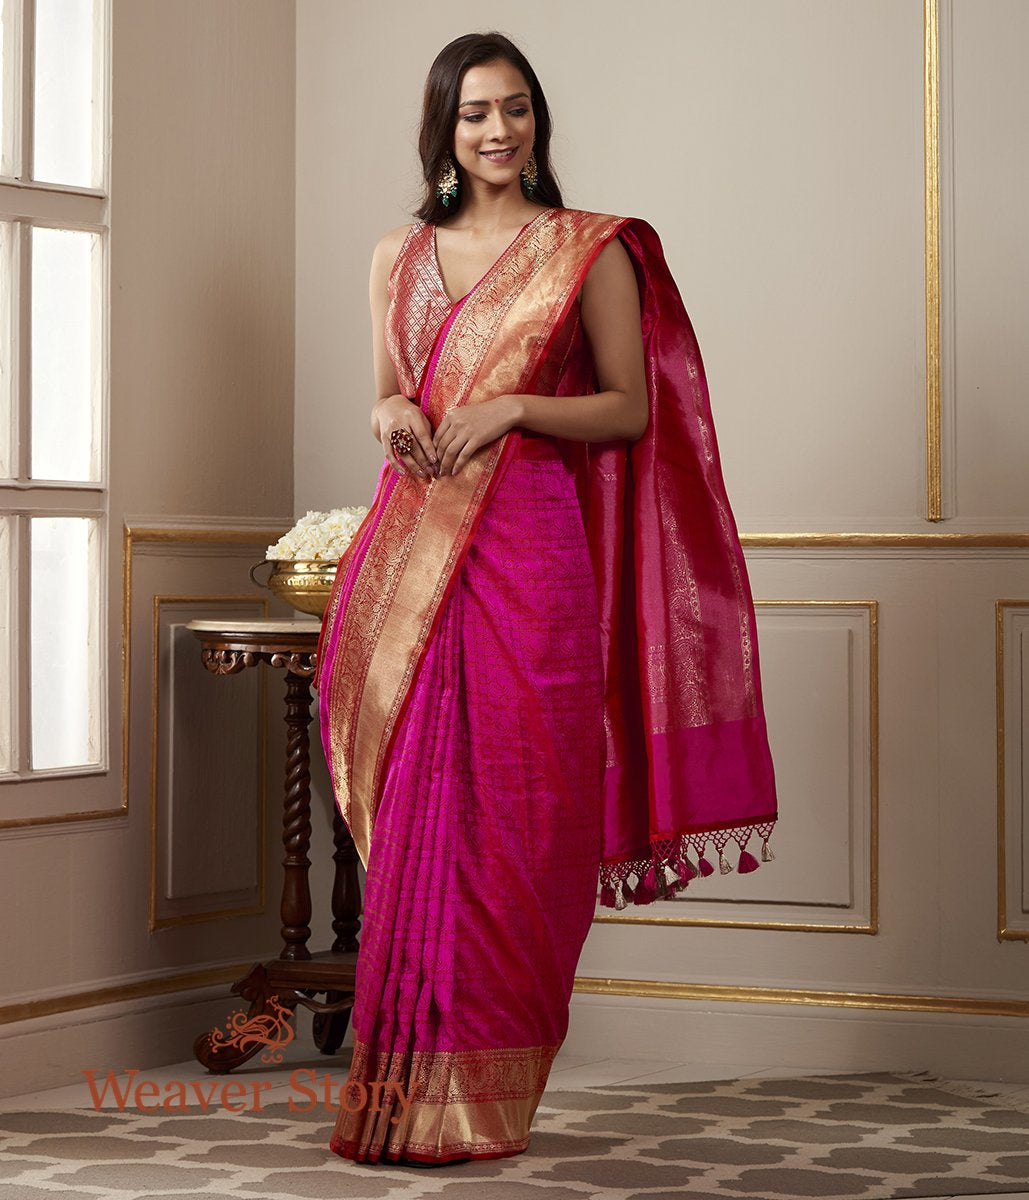 Handwoven Hot Pink Banarasi Tanchoi Saree with Gold Zari Border